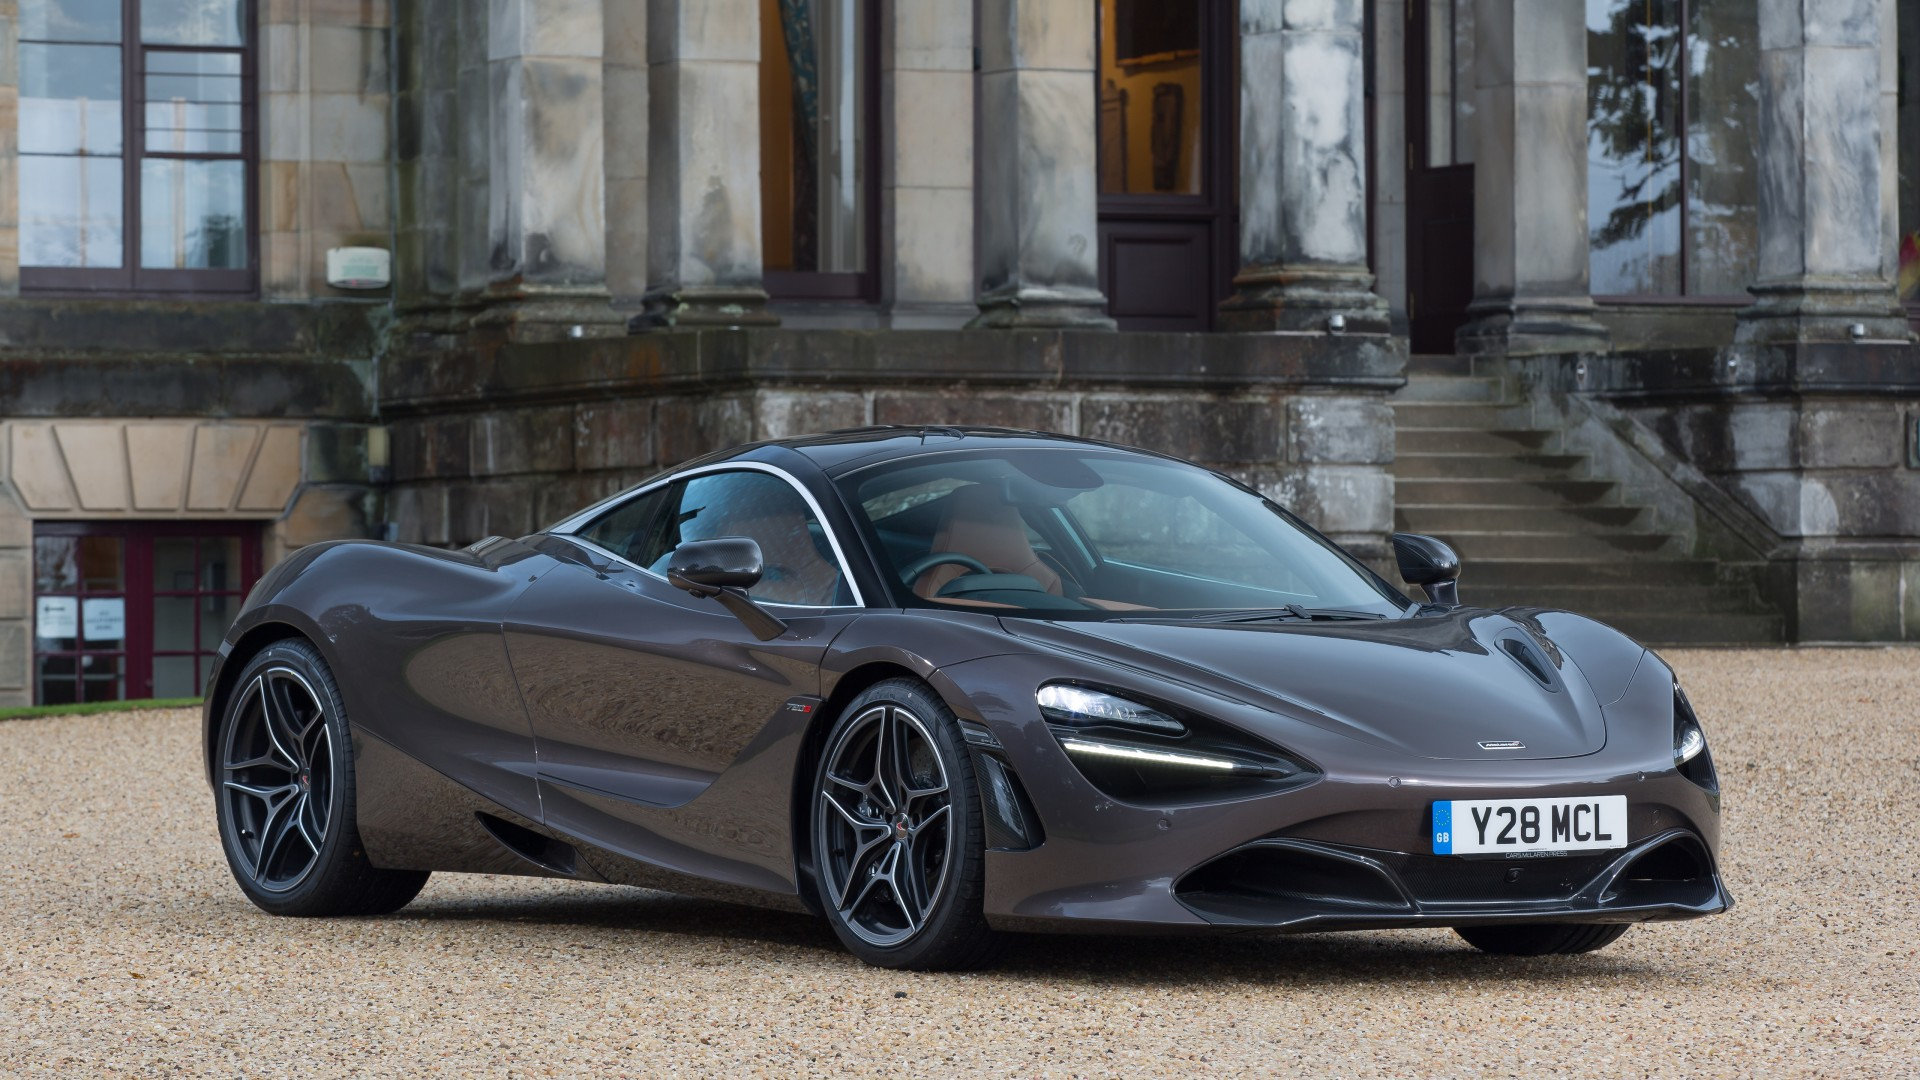 Mercedes Benz Coupe >> 2017 McLaren 720S Coupe 10 Wallpaper | HD Car Wallpapers | ID #8843